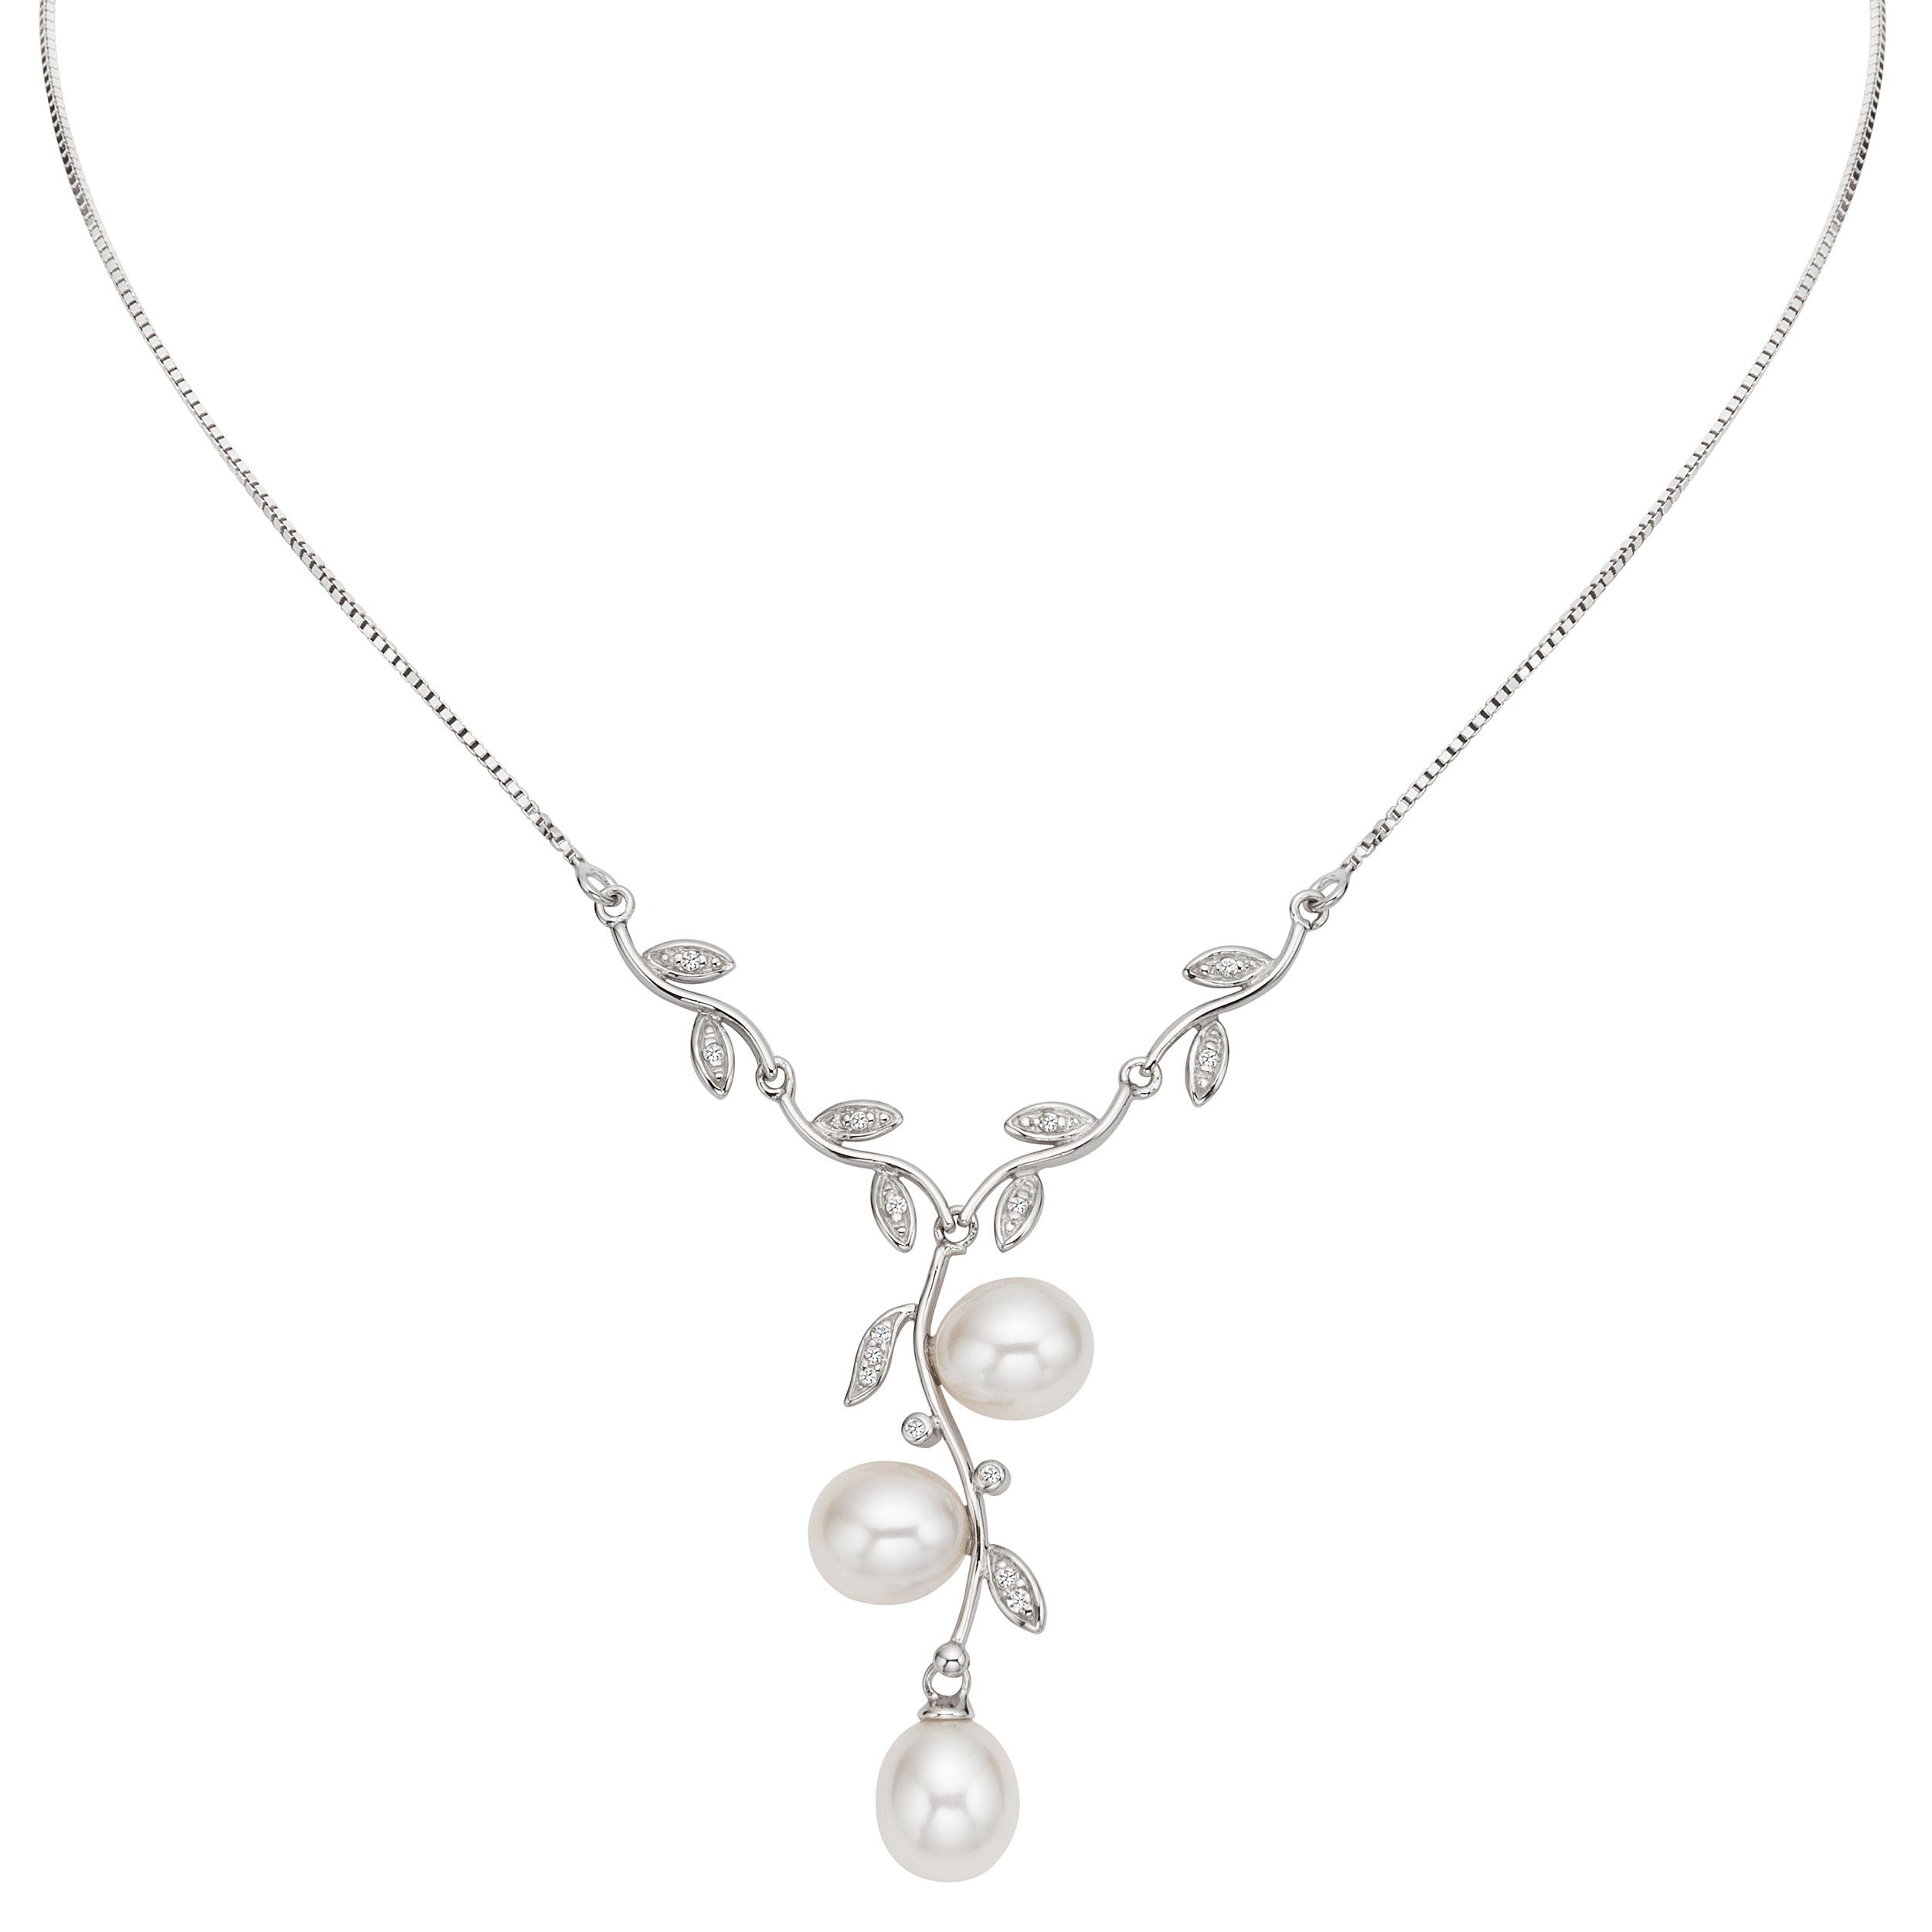 Embellish your ensembles with this sterlingsilver pearl leaf